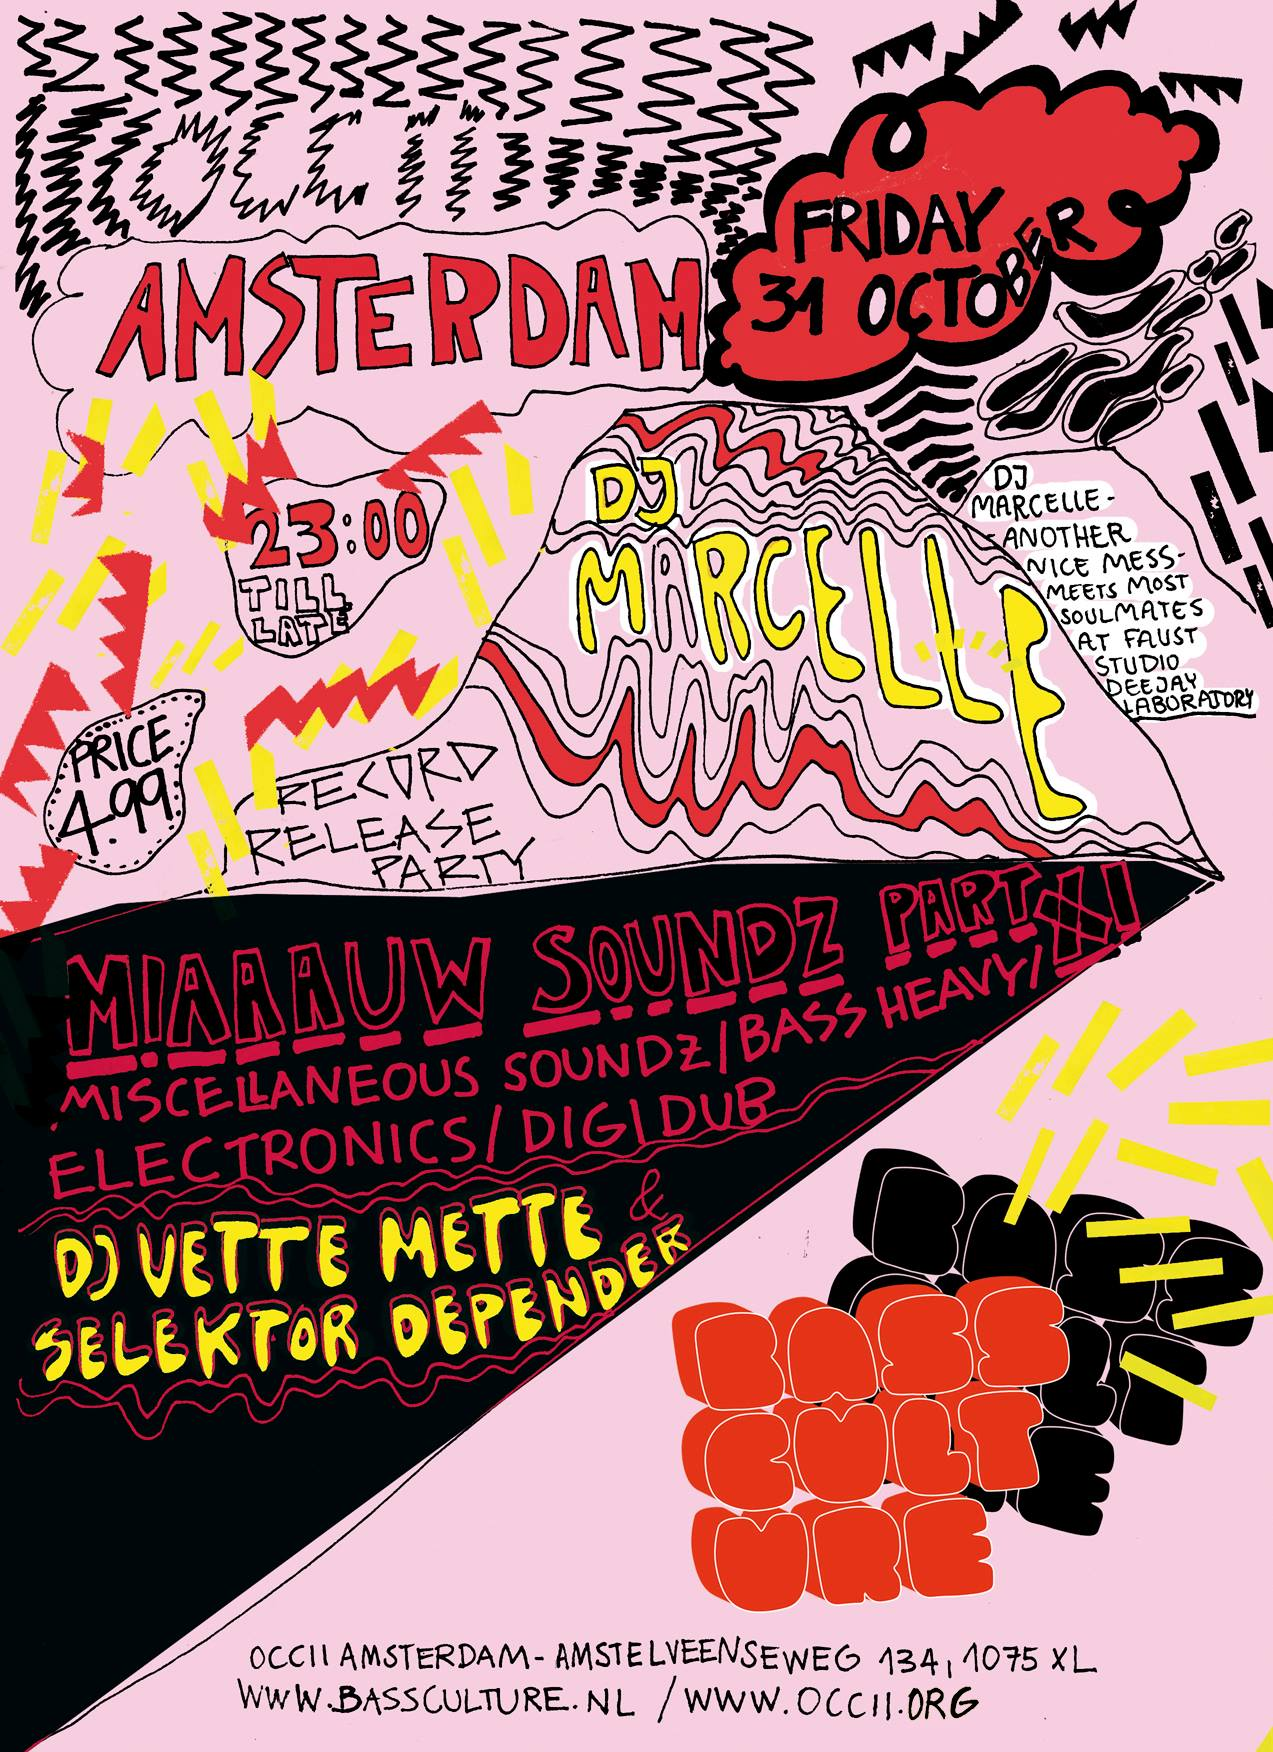 MIAAAUW SOUNDZ PART XI w/ DJ MARCELLE (Another Nice Mess) + DJ Vette Mette & Selektor Depender